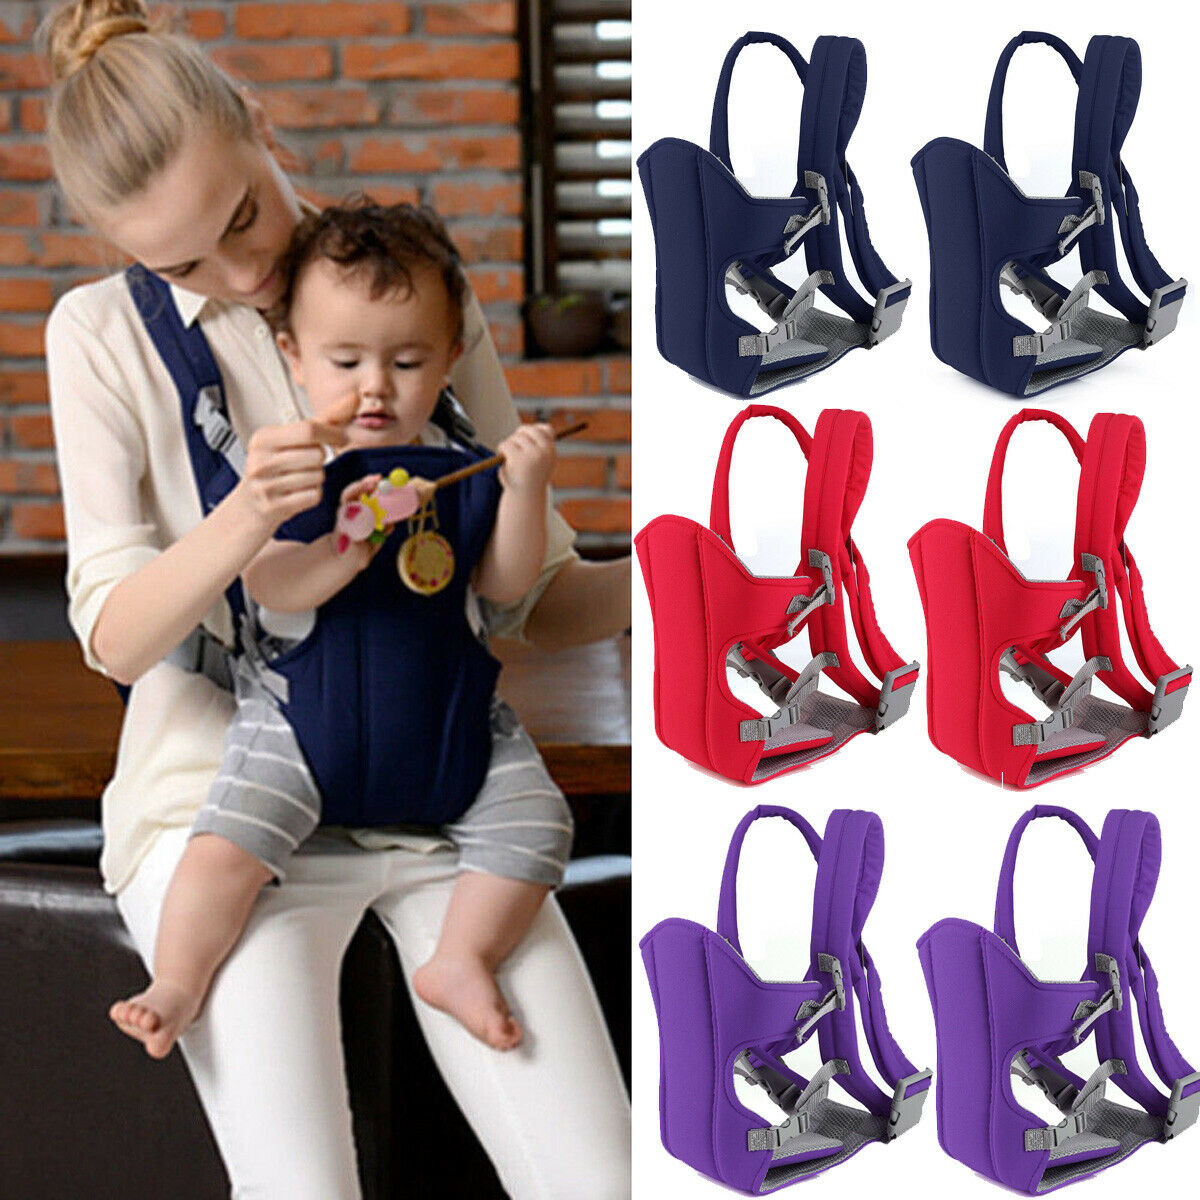 Newborn Infant  Ergonomic Adjustable Breathable Wrap Sling Backpack-in Backpacks & Carriers from Mother & Kids on AliExpress - 11.11_Double 11_Singles' Day